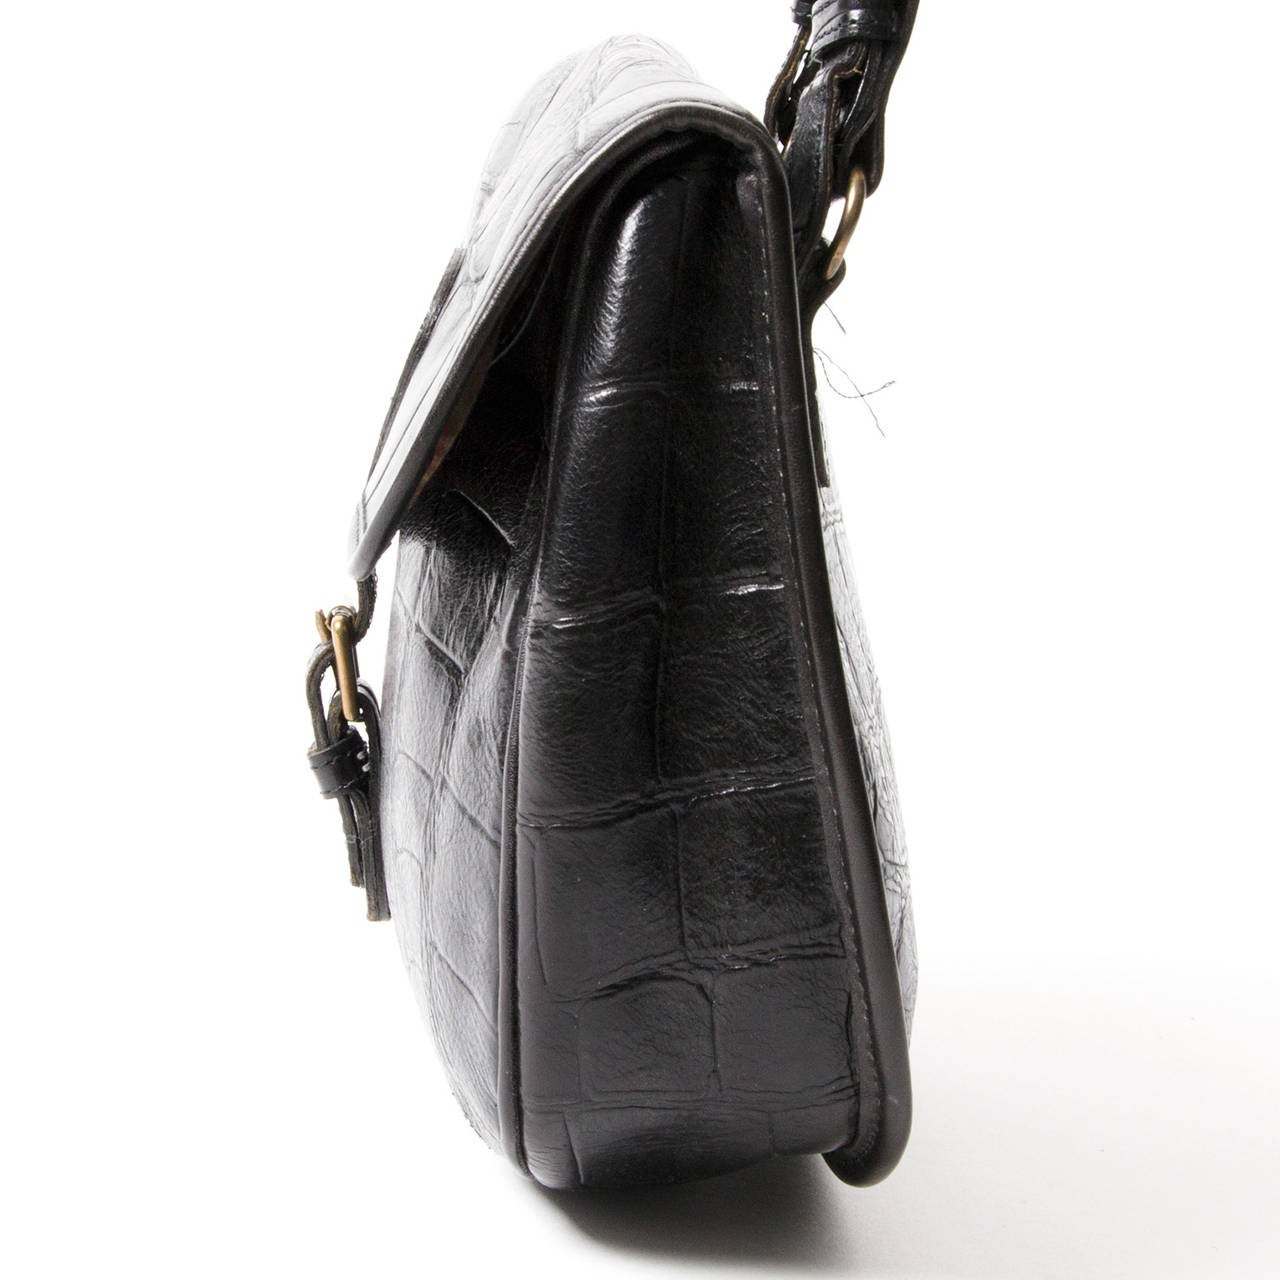 Mulberry Congo Leather Shoulder Saddle Bag at 1stdibs 0d0cda9aa8ddc